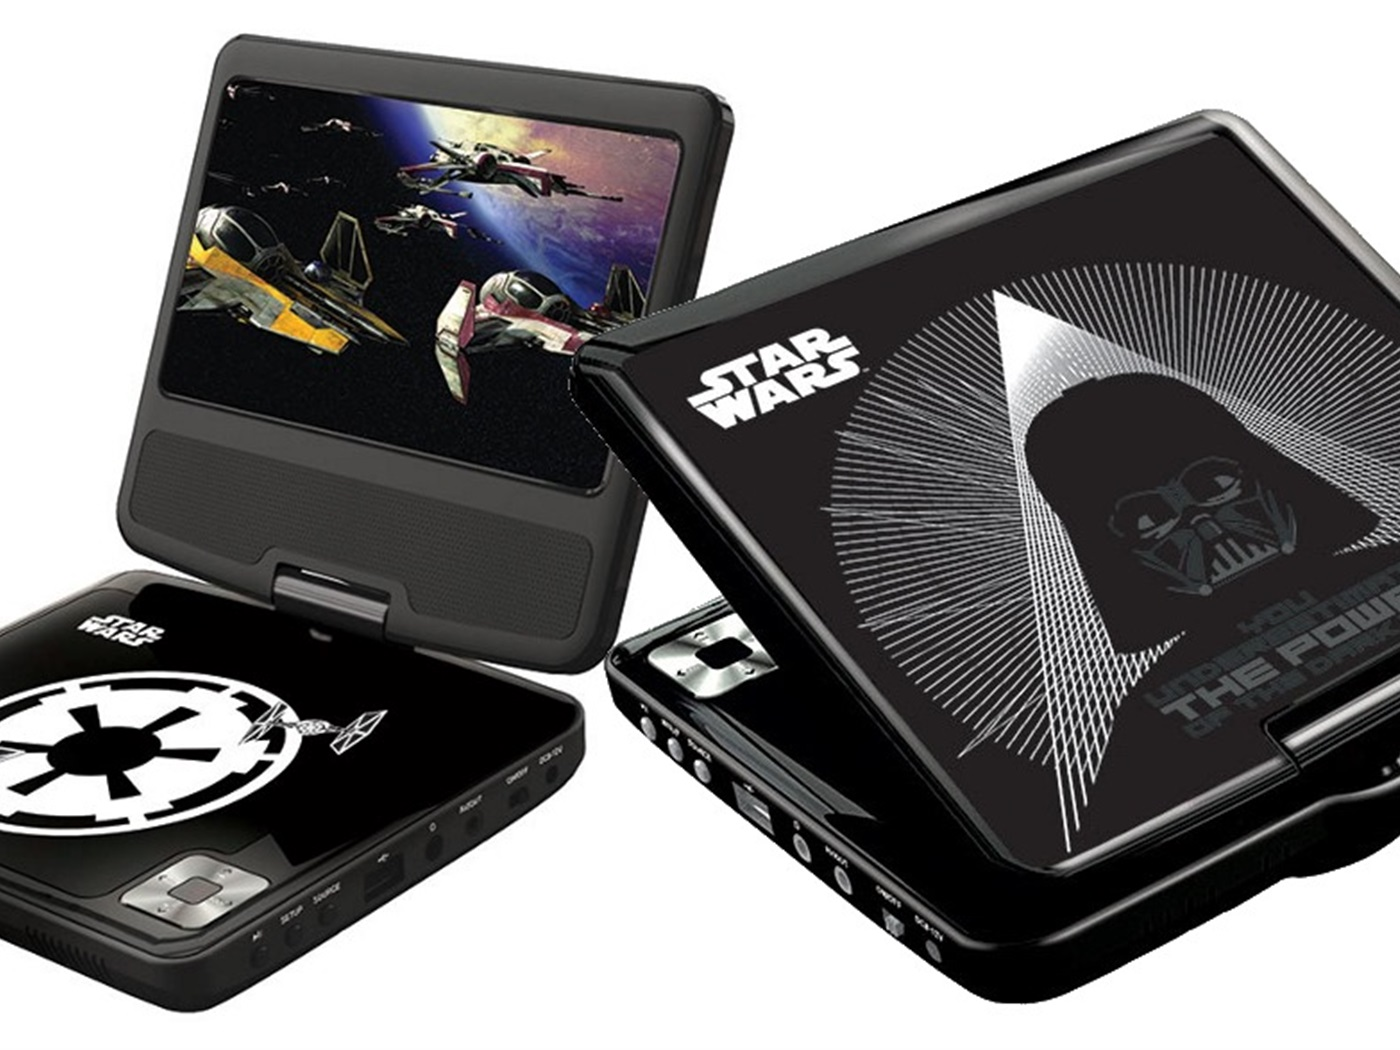 LEXIBOOK STAR WARS PRIJENOSNI DVD PLAYER DVDP6SW00